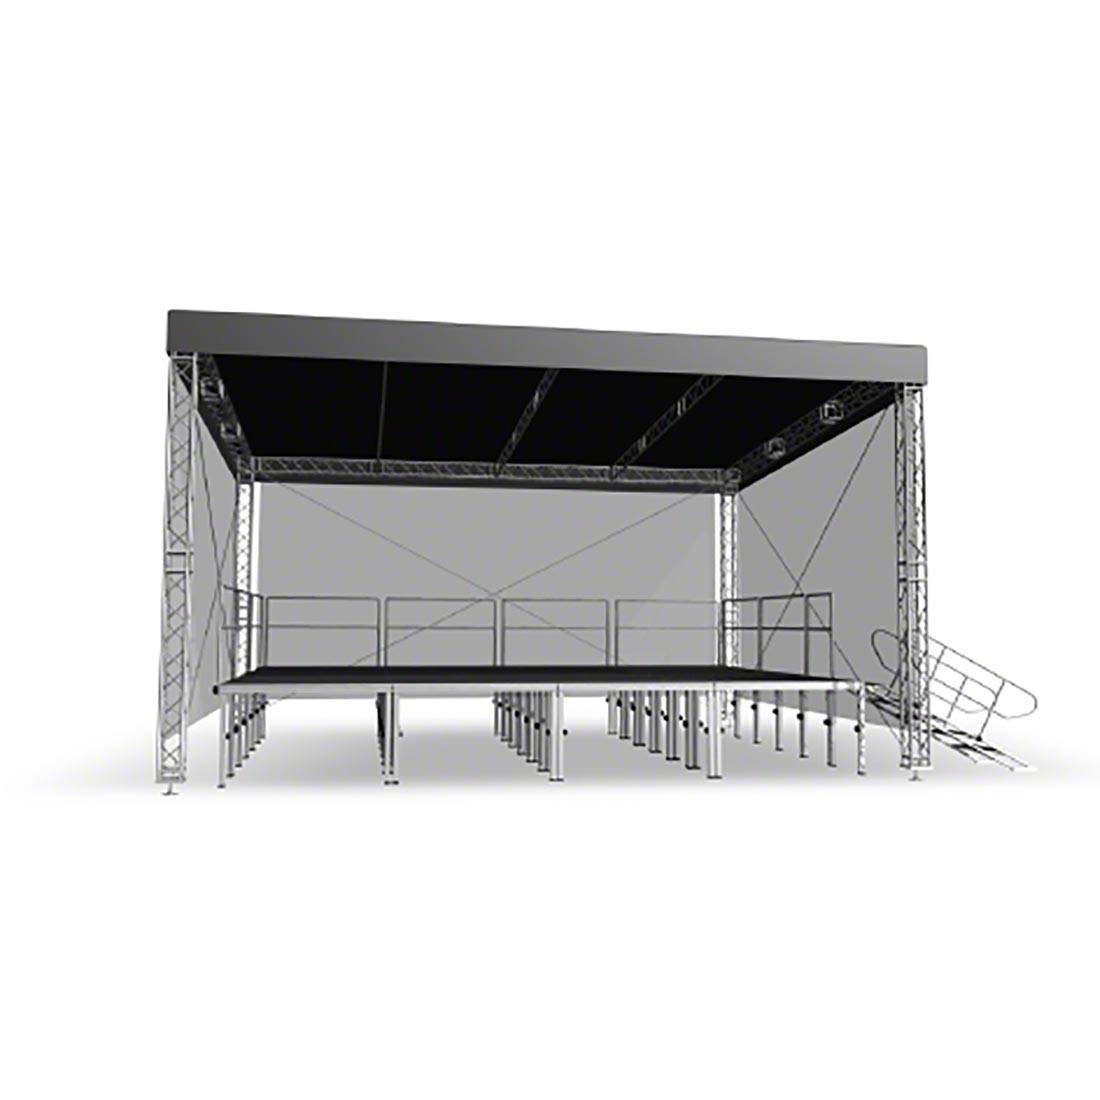 Pro-Flex Straight Light Roof Canopy u0026&; Truss Package for 12u0027x8u0027 ...  sc 1 st  StageDrop Portable Stage u0026 Truss & Pro-Flex Straight Light Roof Canopy u0026 Truss Package for 12u0027x8 ...